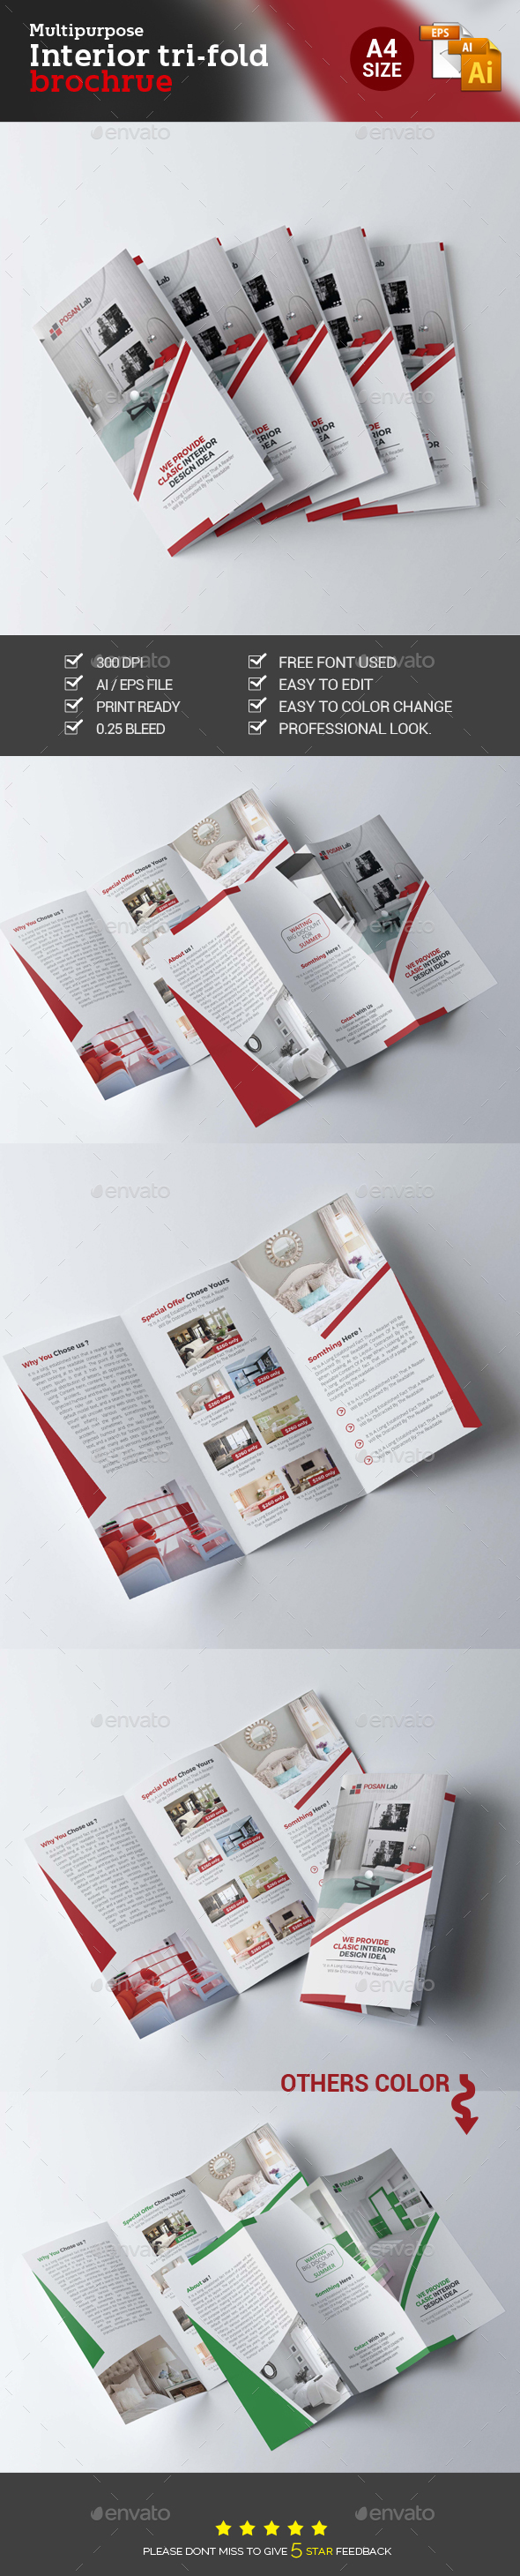 Interior Trifold Brochure - Brochures Print Templates